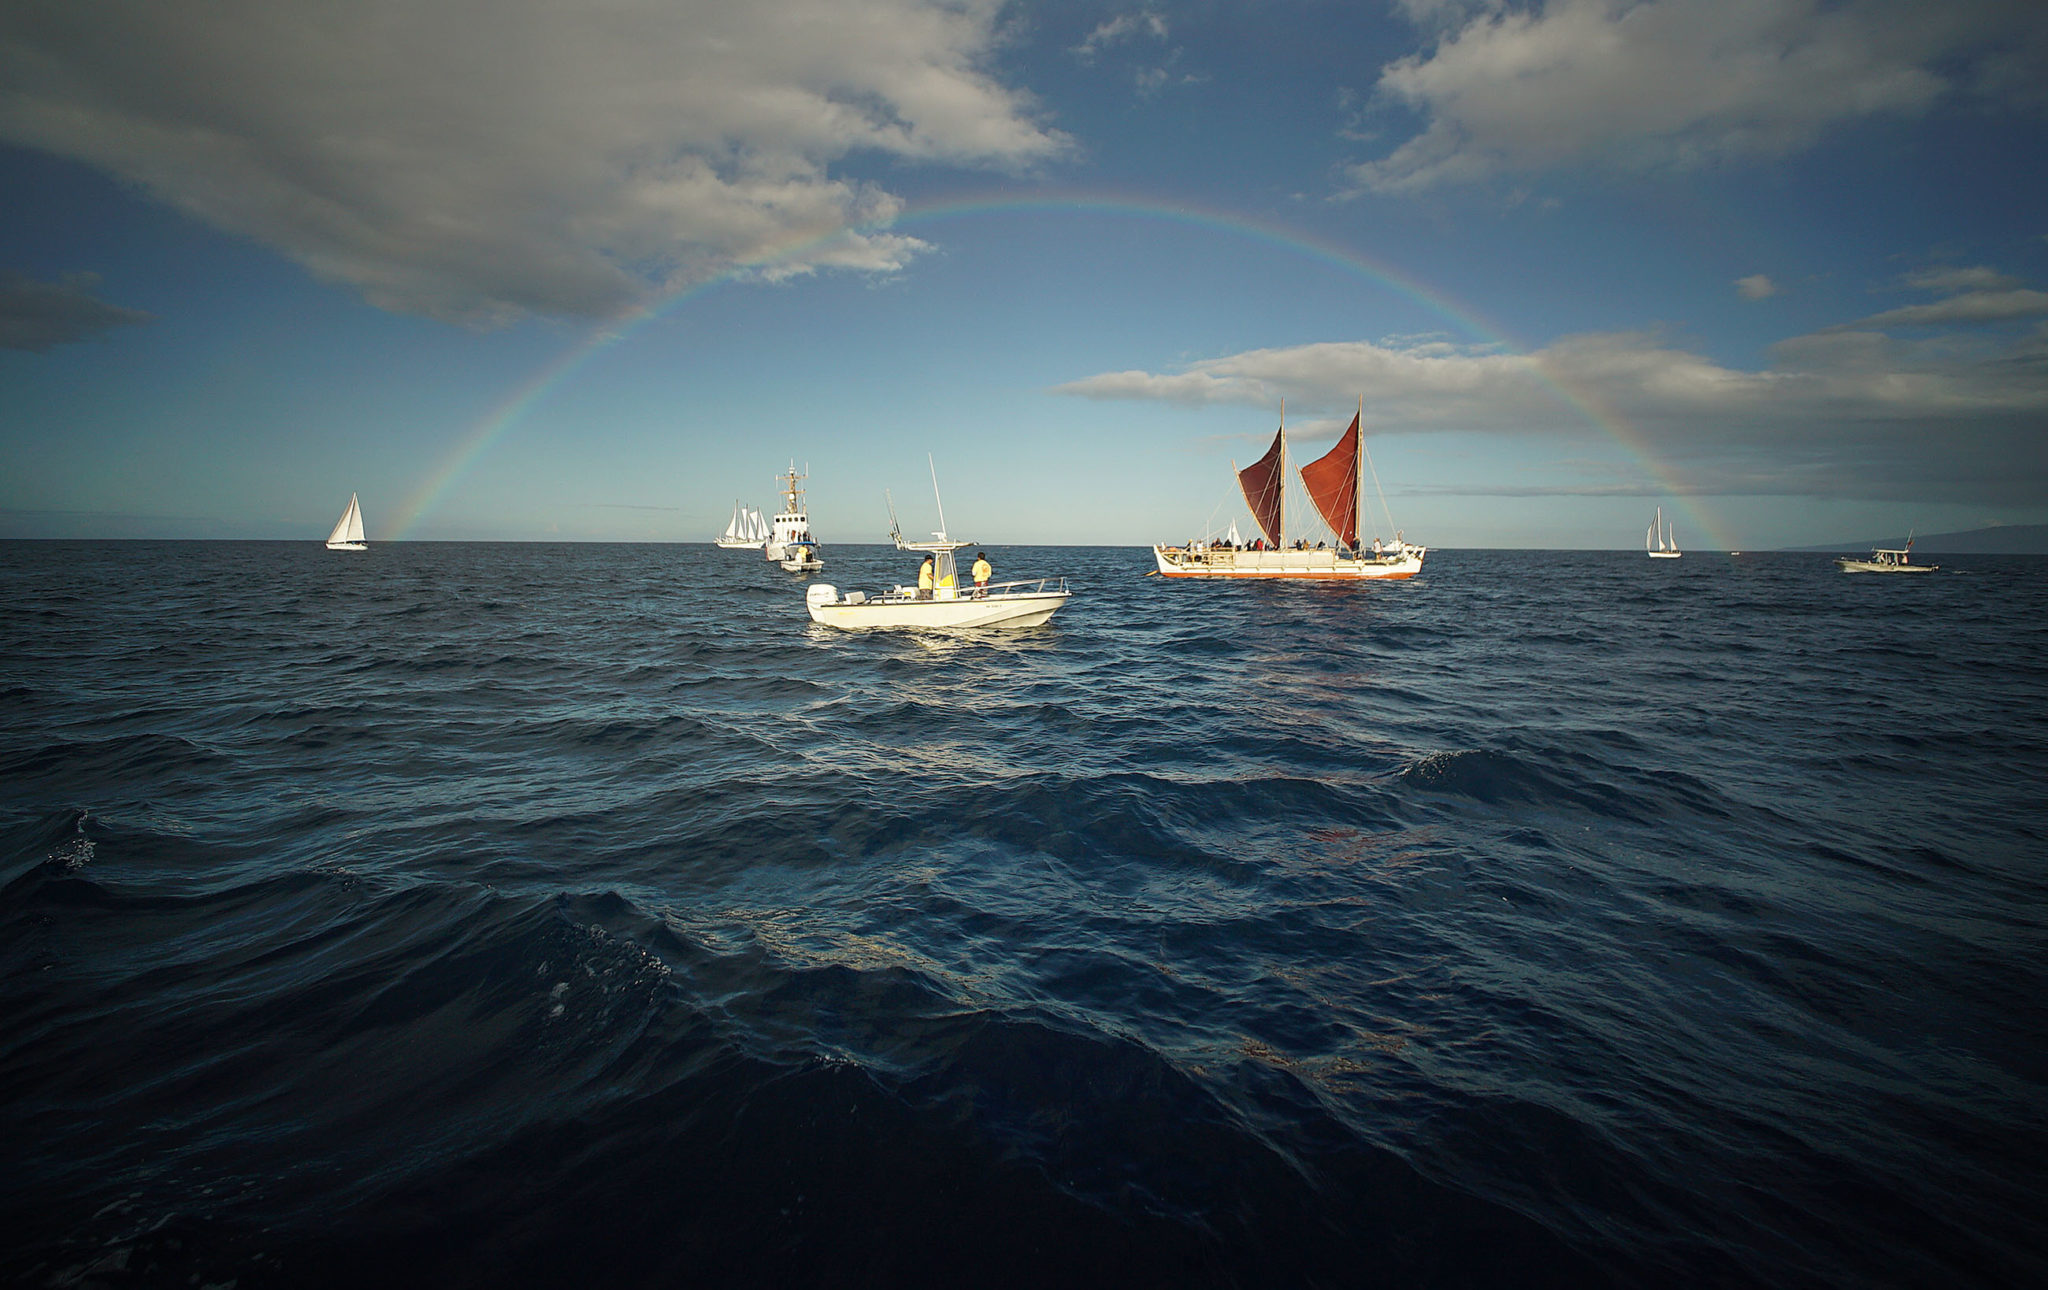 <p>Hokulea sails beneath a rainbow that seems like nature&#8217;s contribution to the welcoming scene. / Cory Lum</p>